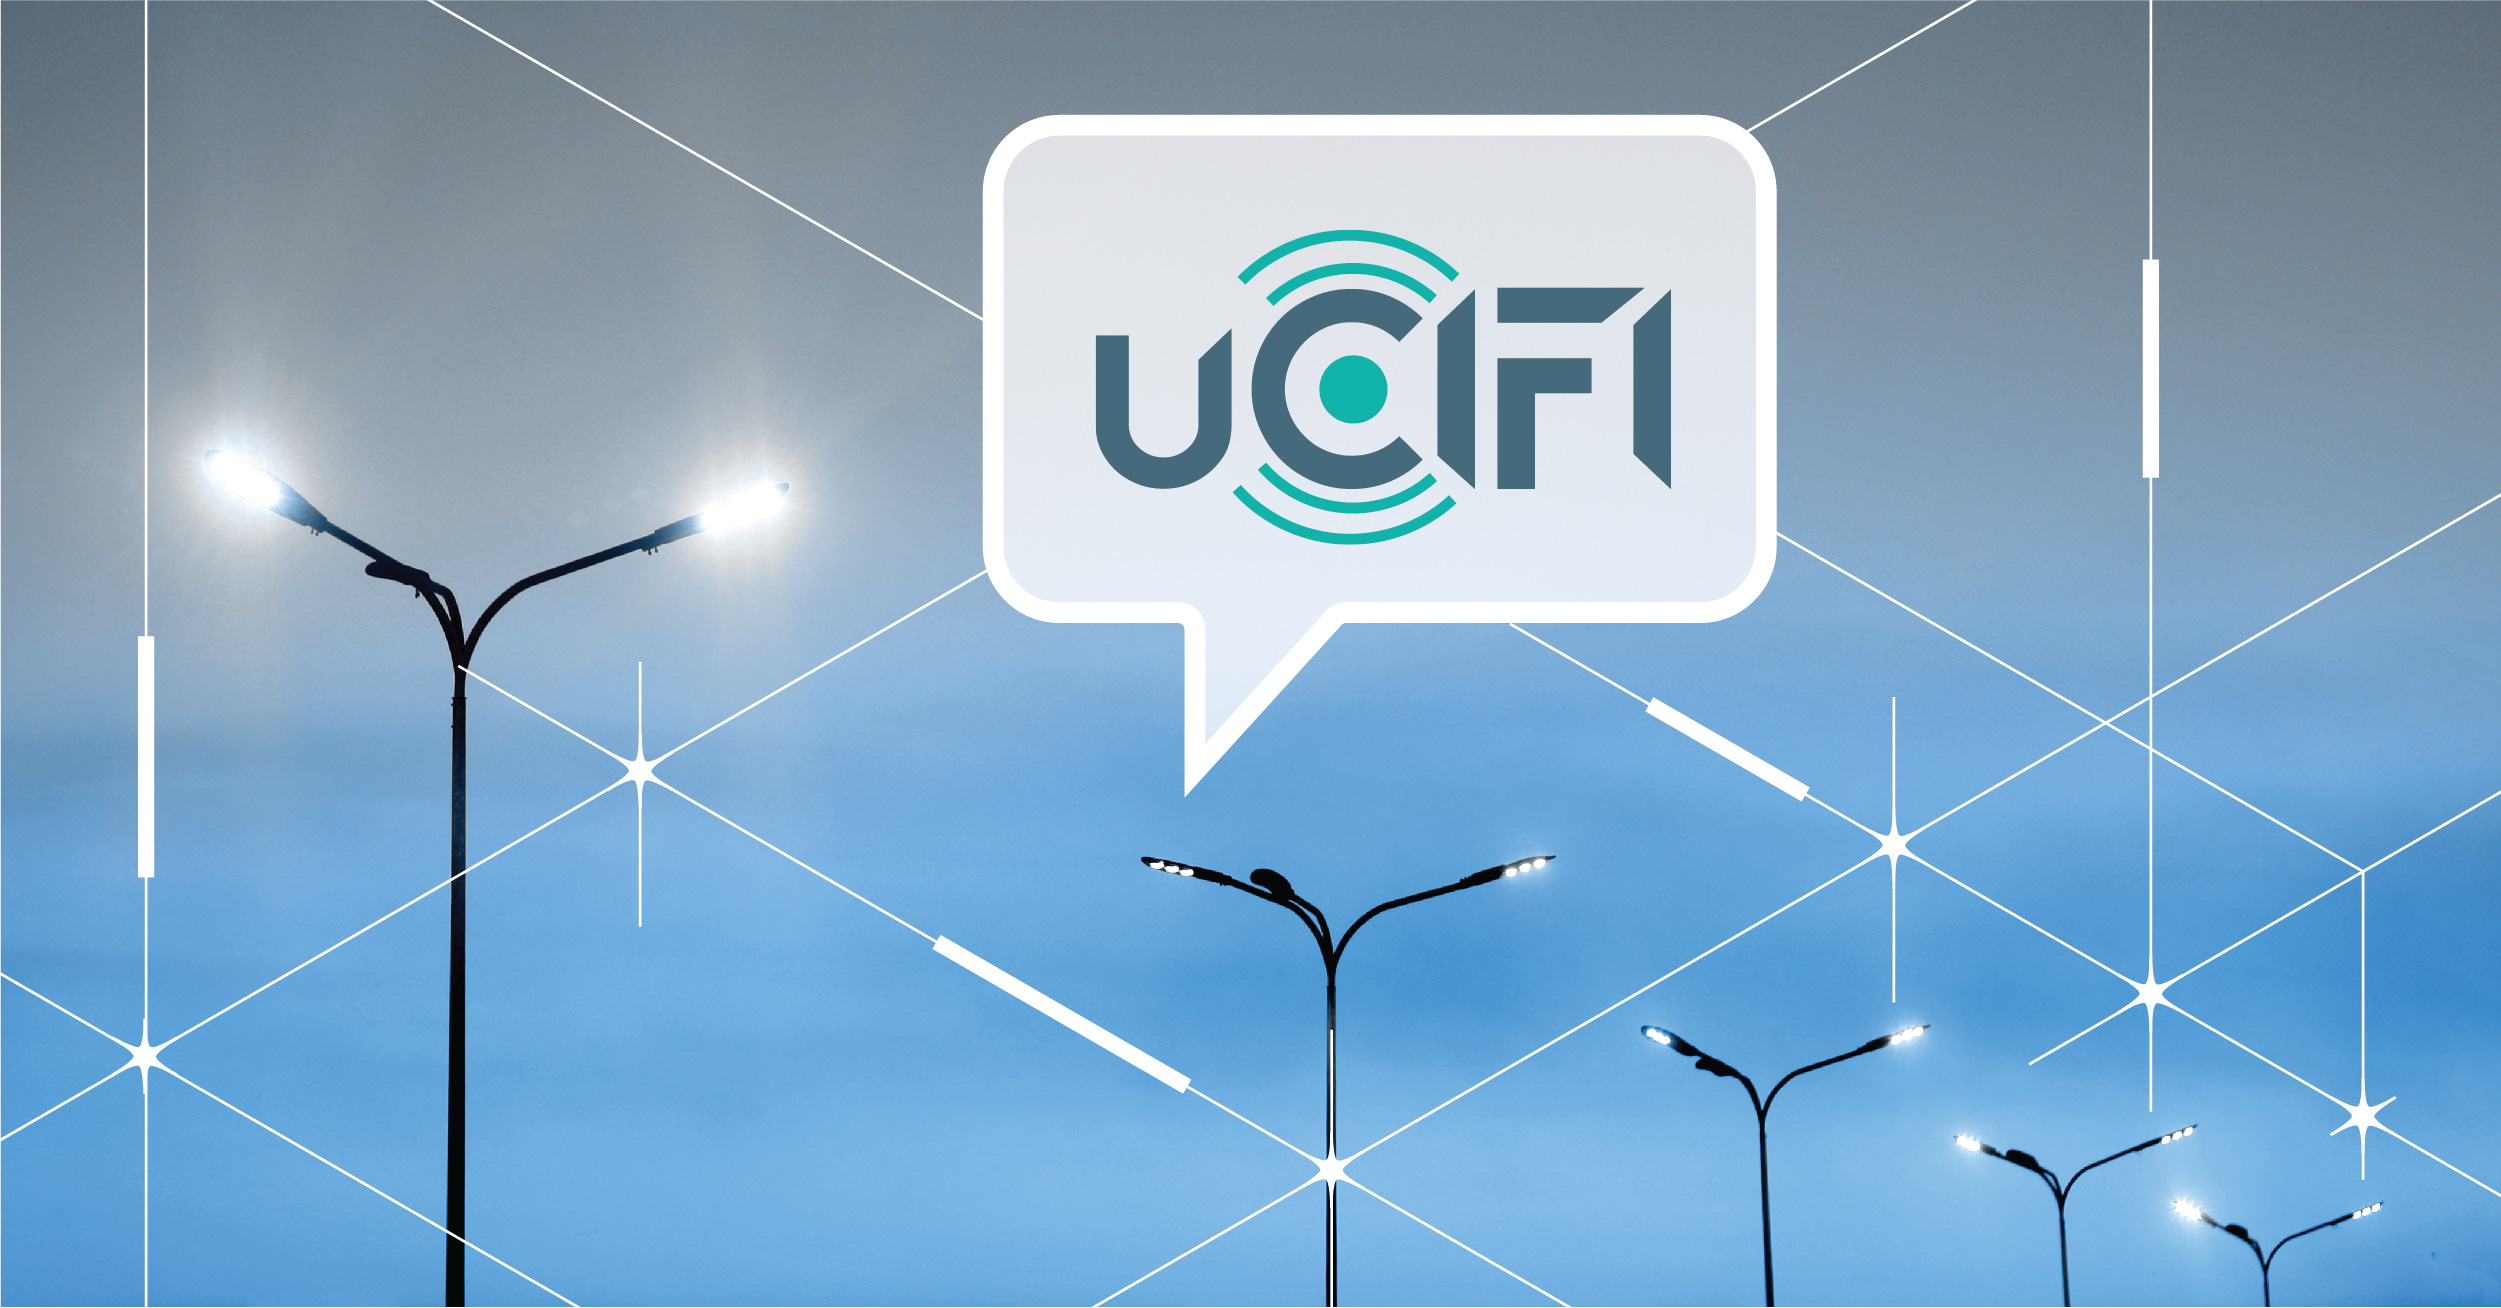 inteliLIGHT increases interoperability for its future-proof smart street lighting solution with uCIFI data model compatibility